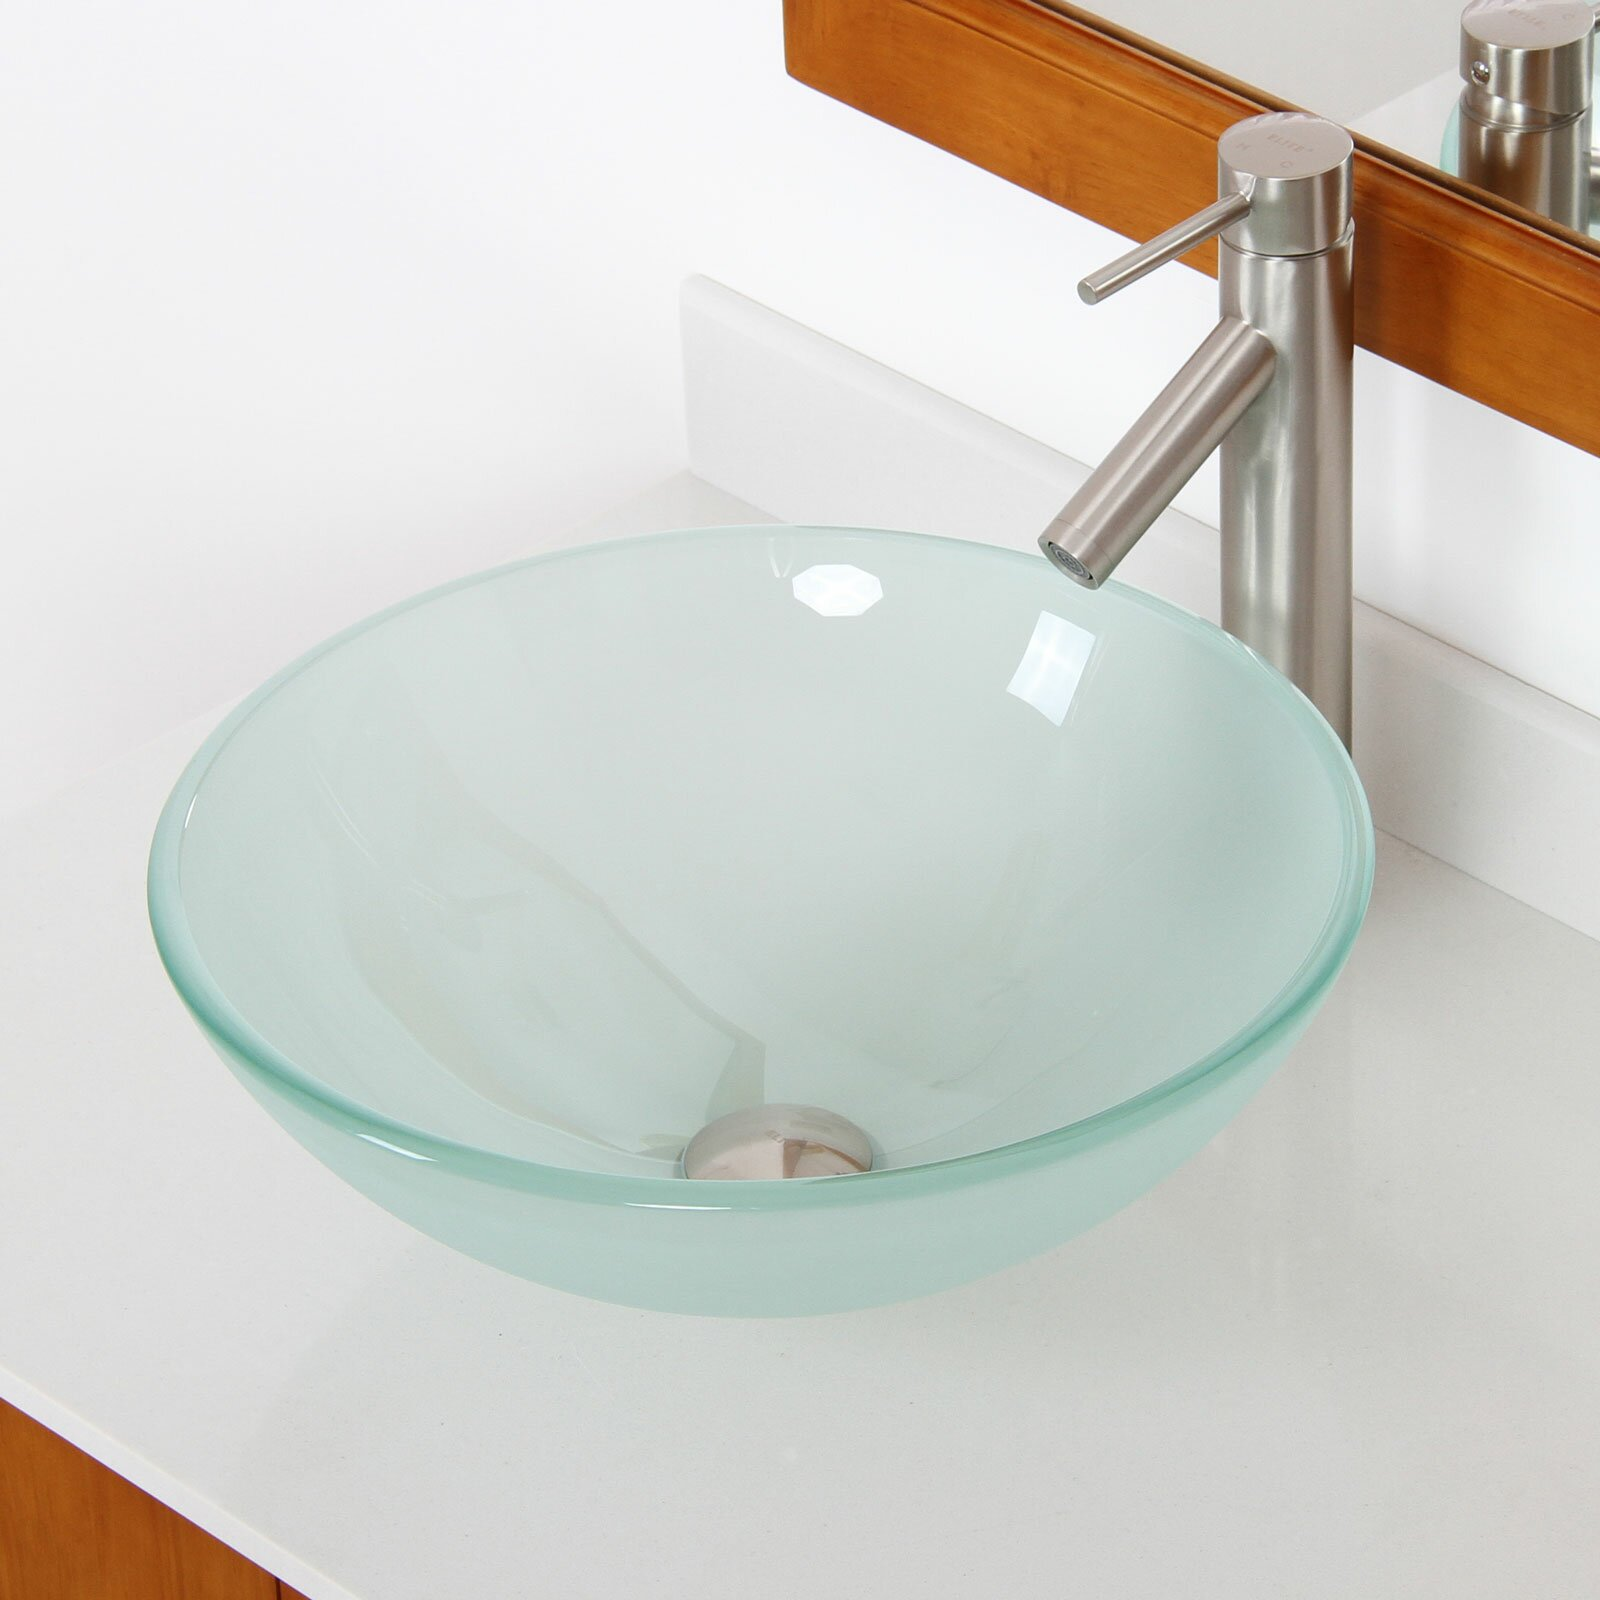 Round Bathroom Sink Bowls : ... Tempered Glass Round Bowl Vessel Bathroom Sink & Reviews Wayfair